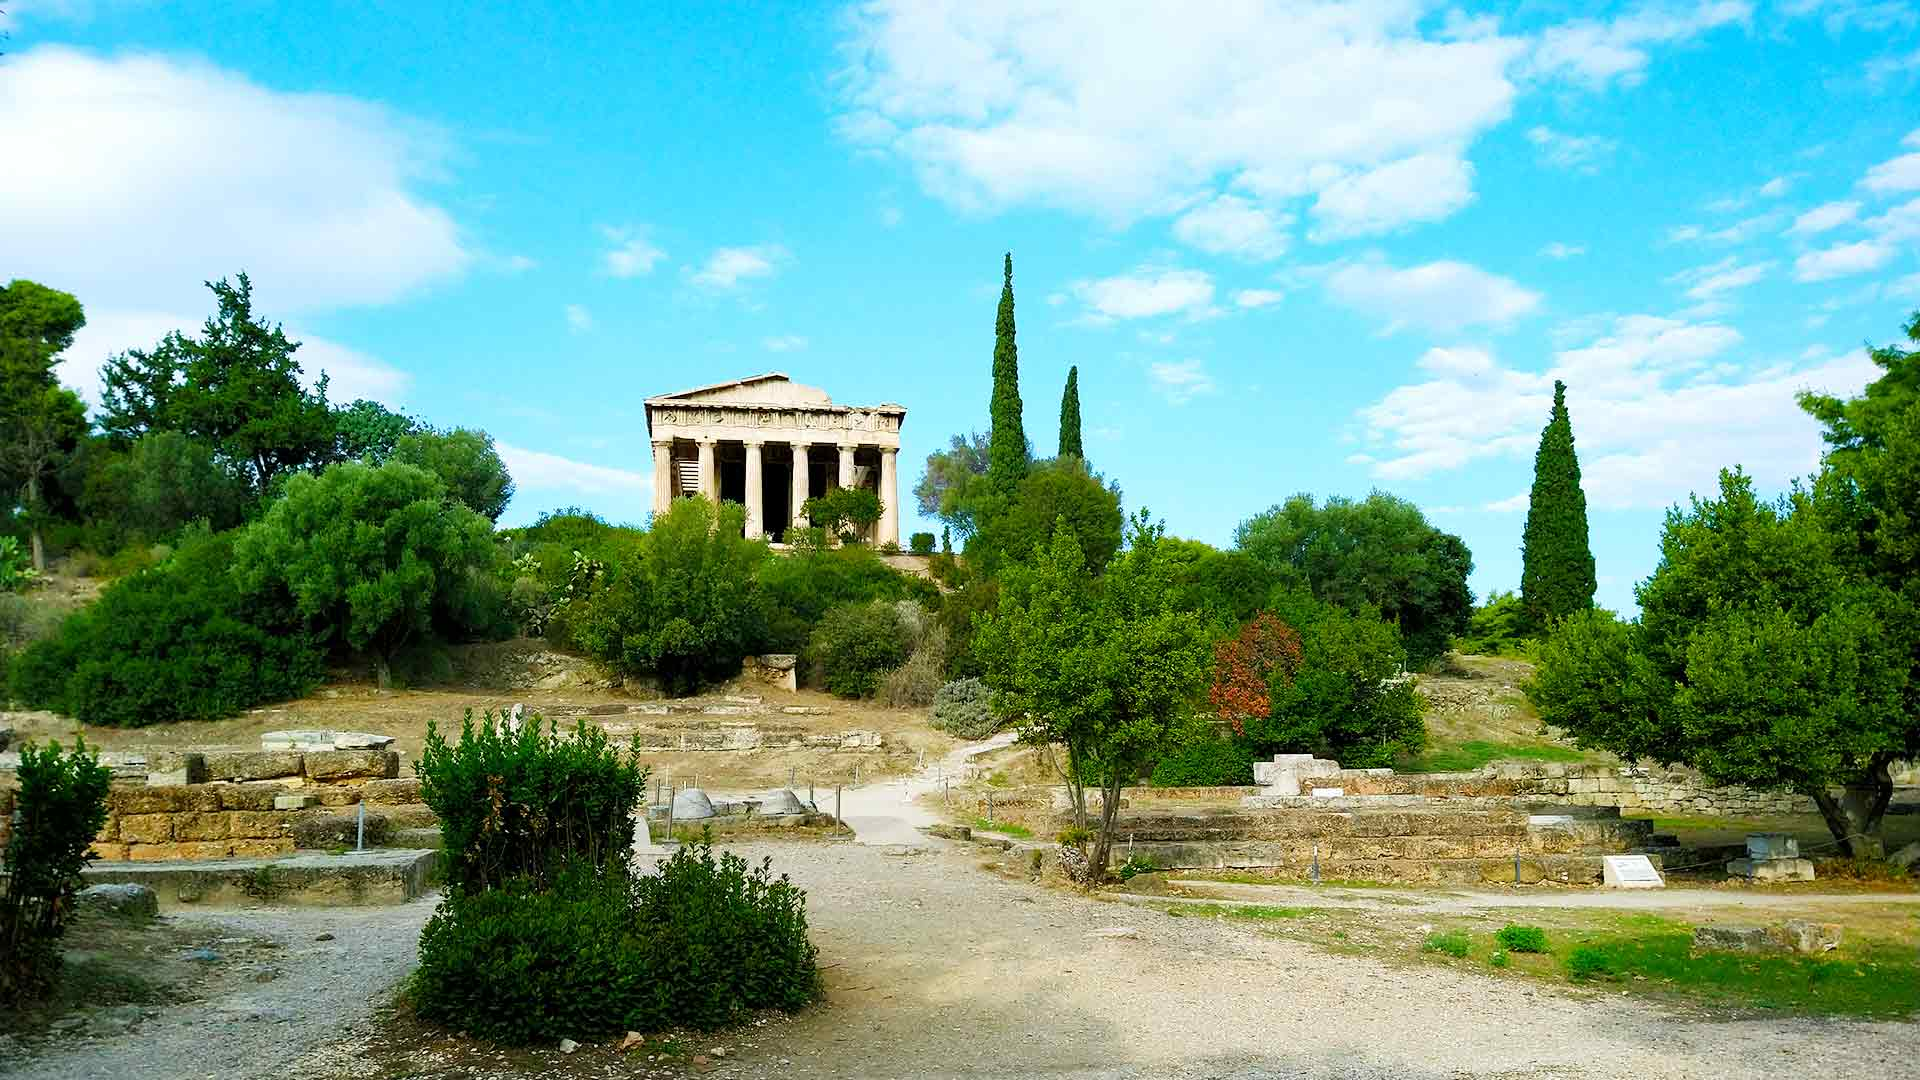 Temple-of-Hephaestus-in-Ancient-Agora,-Athens